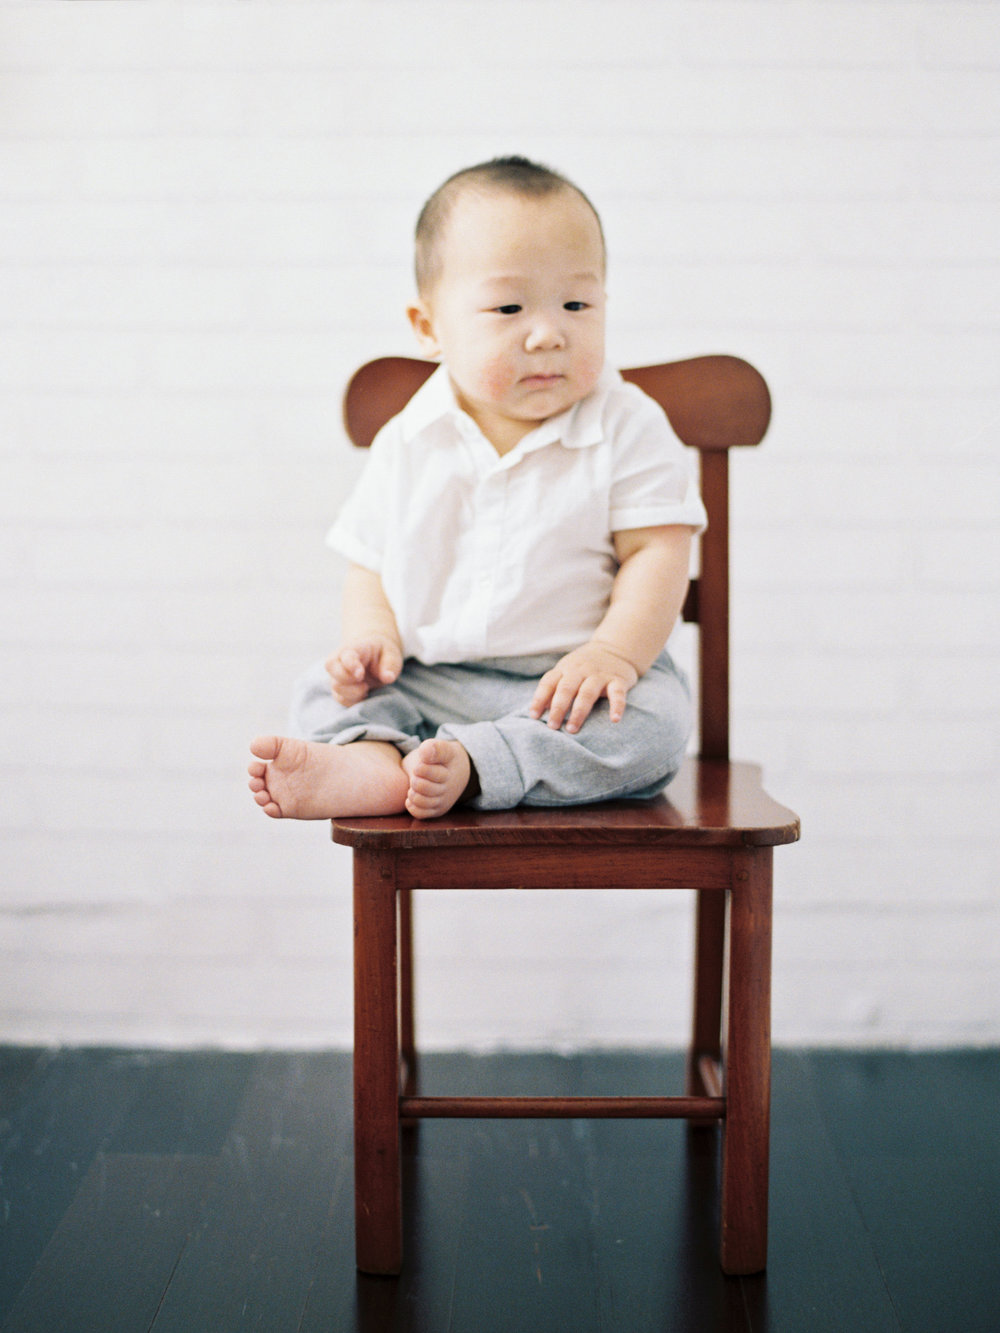 Cody-At Home-Simple-Baby Photography-8 Months Old-Studio June-Film Photography-Jakarta-41.jpg